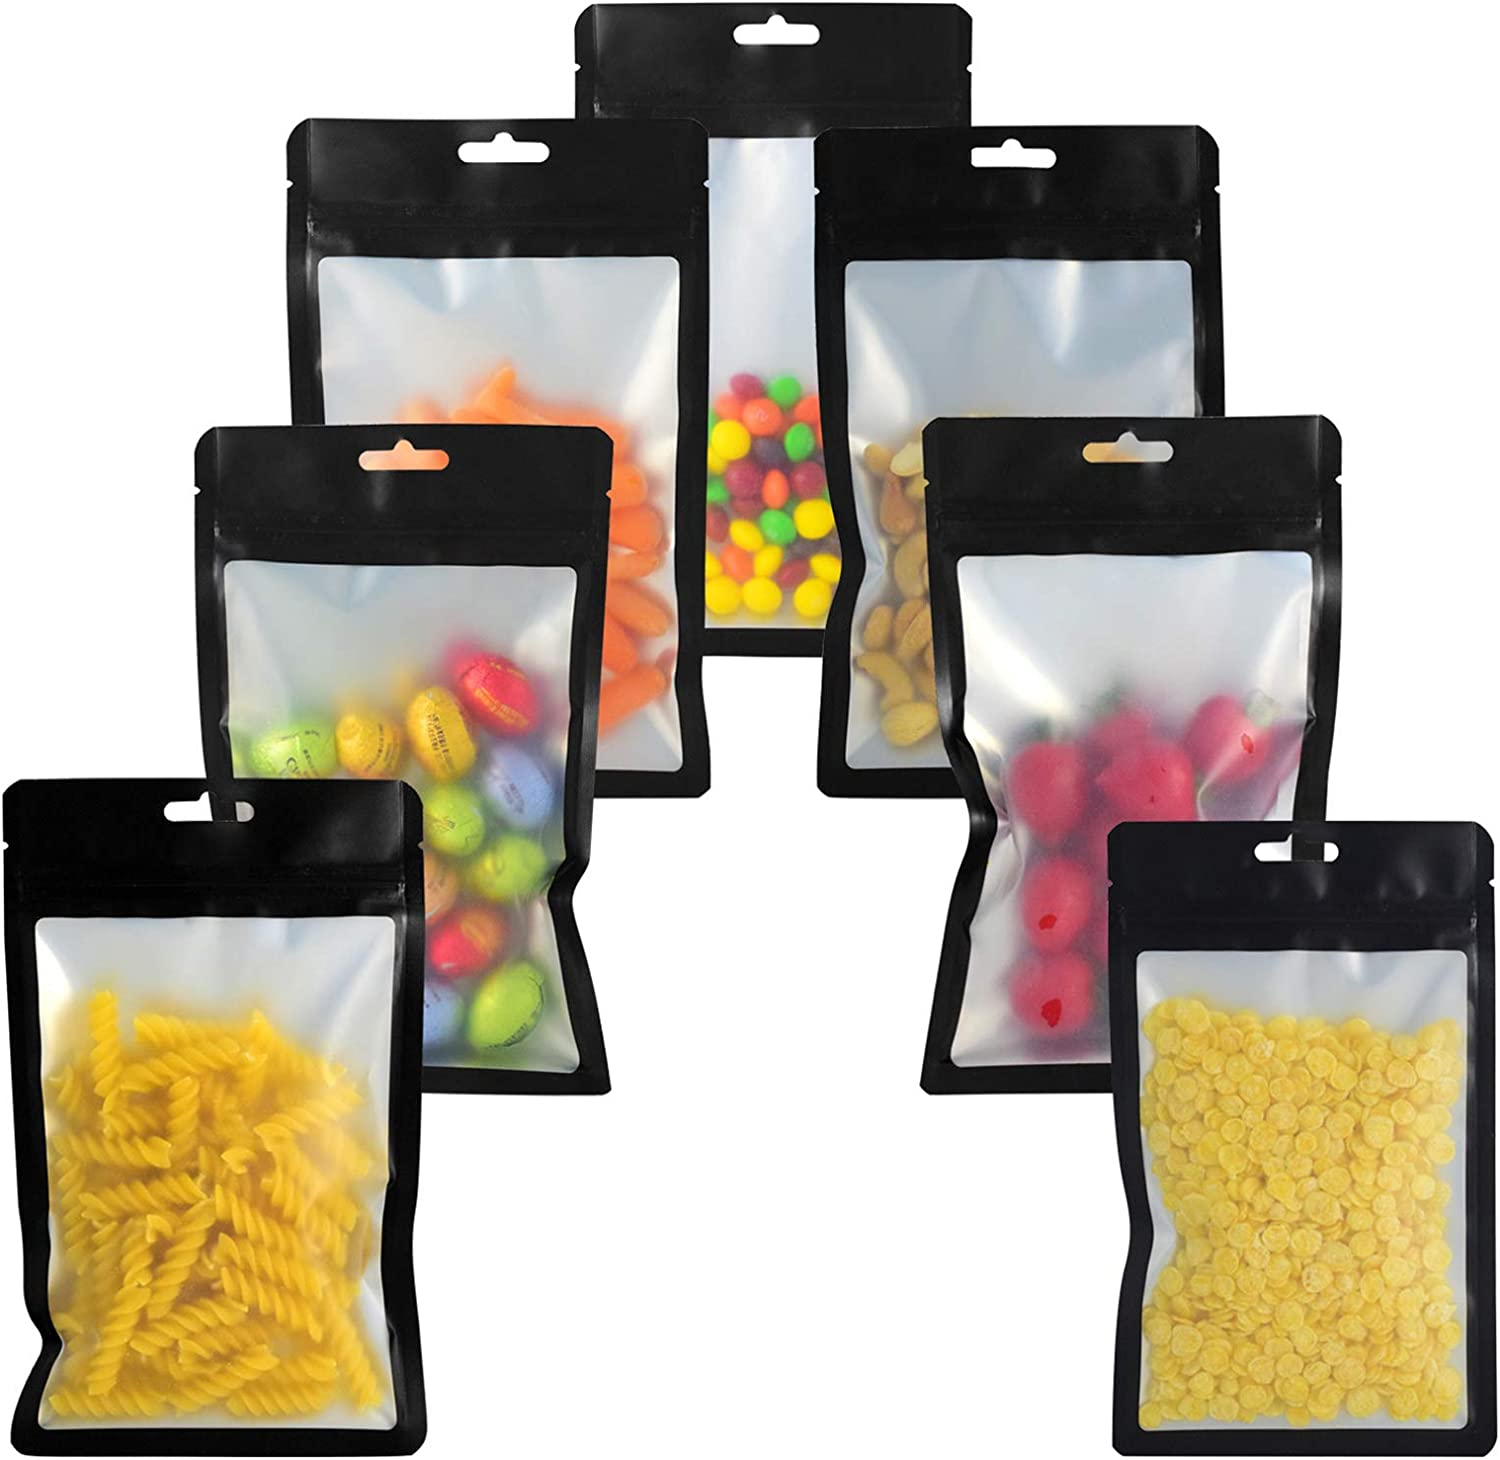 100 Pieces Resealable Mylar Bags Smell Proof Ziplock Bag for Food Storage, Multipurpose Foil Packaging Pouch Bag Reusable (Black Bags with Clear Window, 5